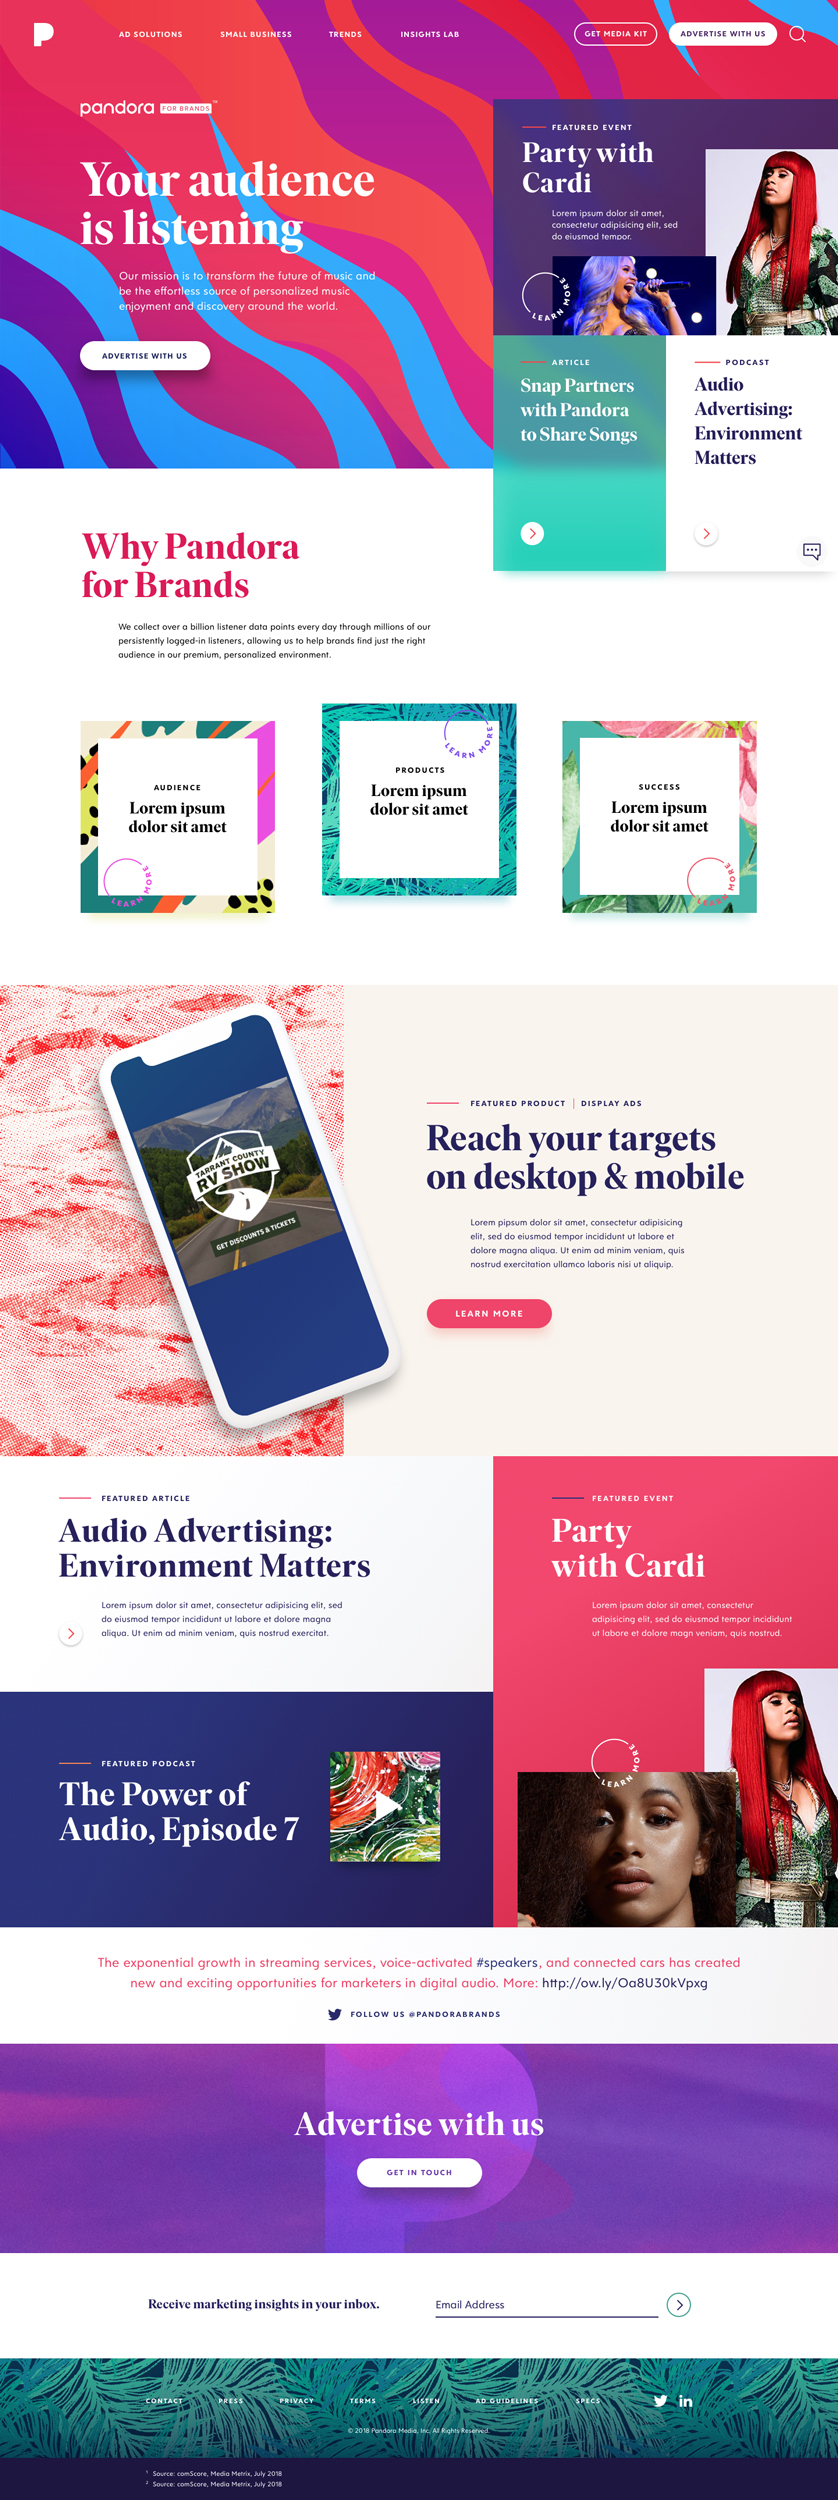 Pandora for Brands redesign. Homepage design showing eclectic colour palette and flexibility of components.